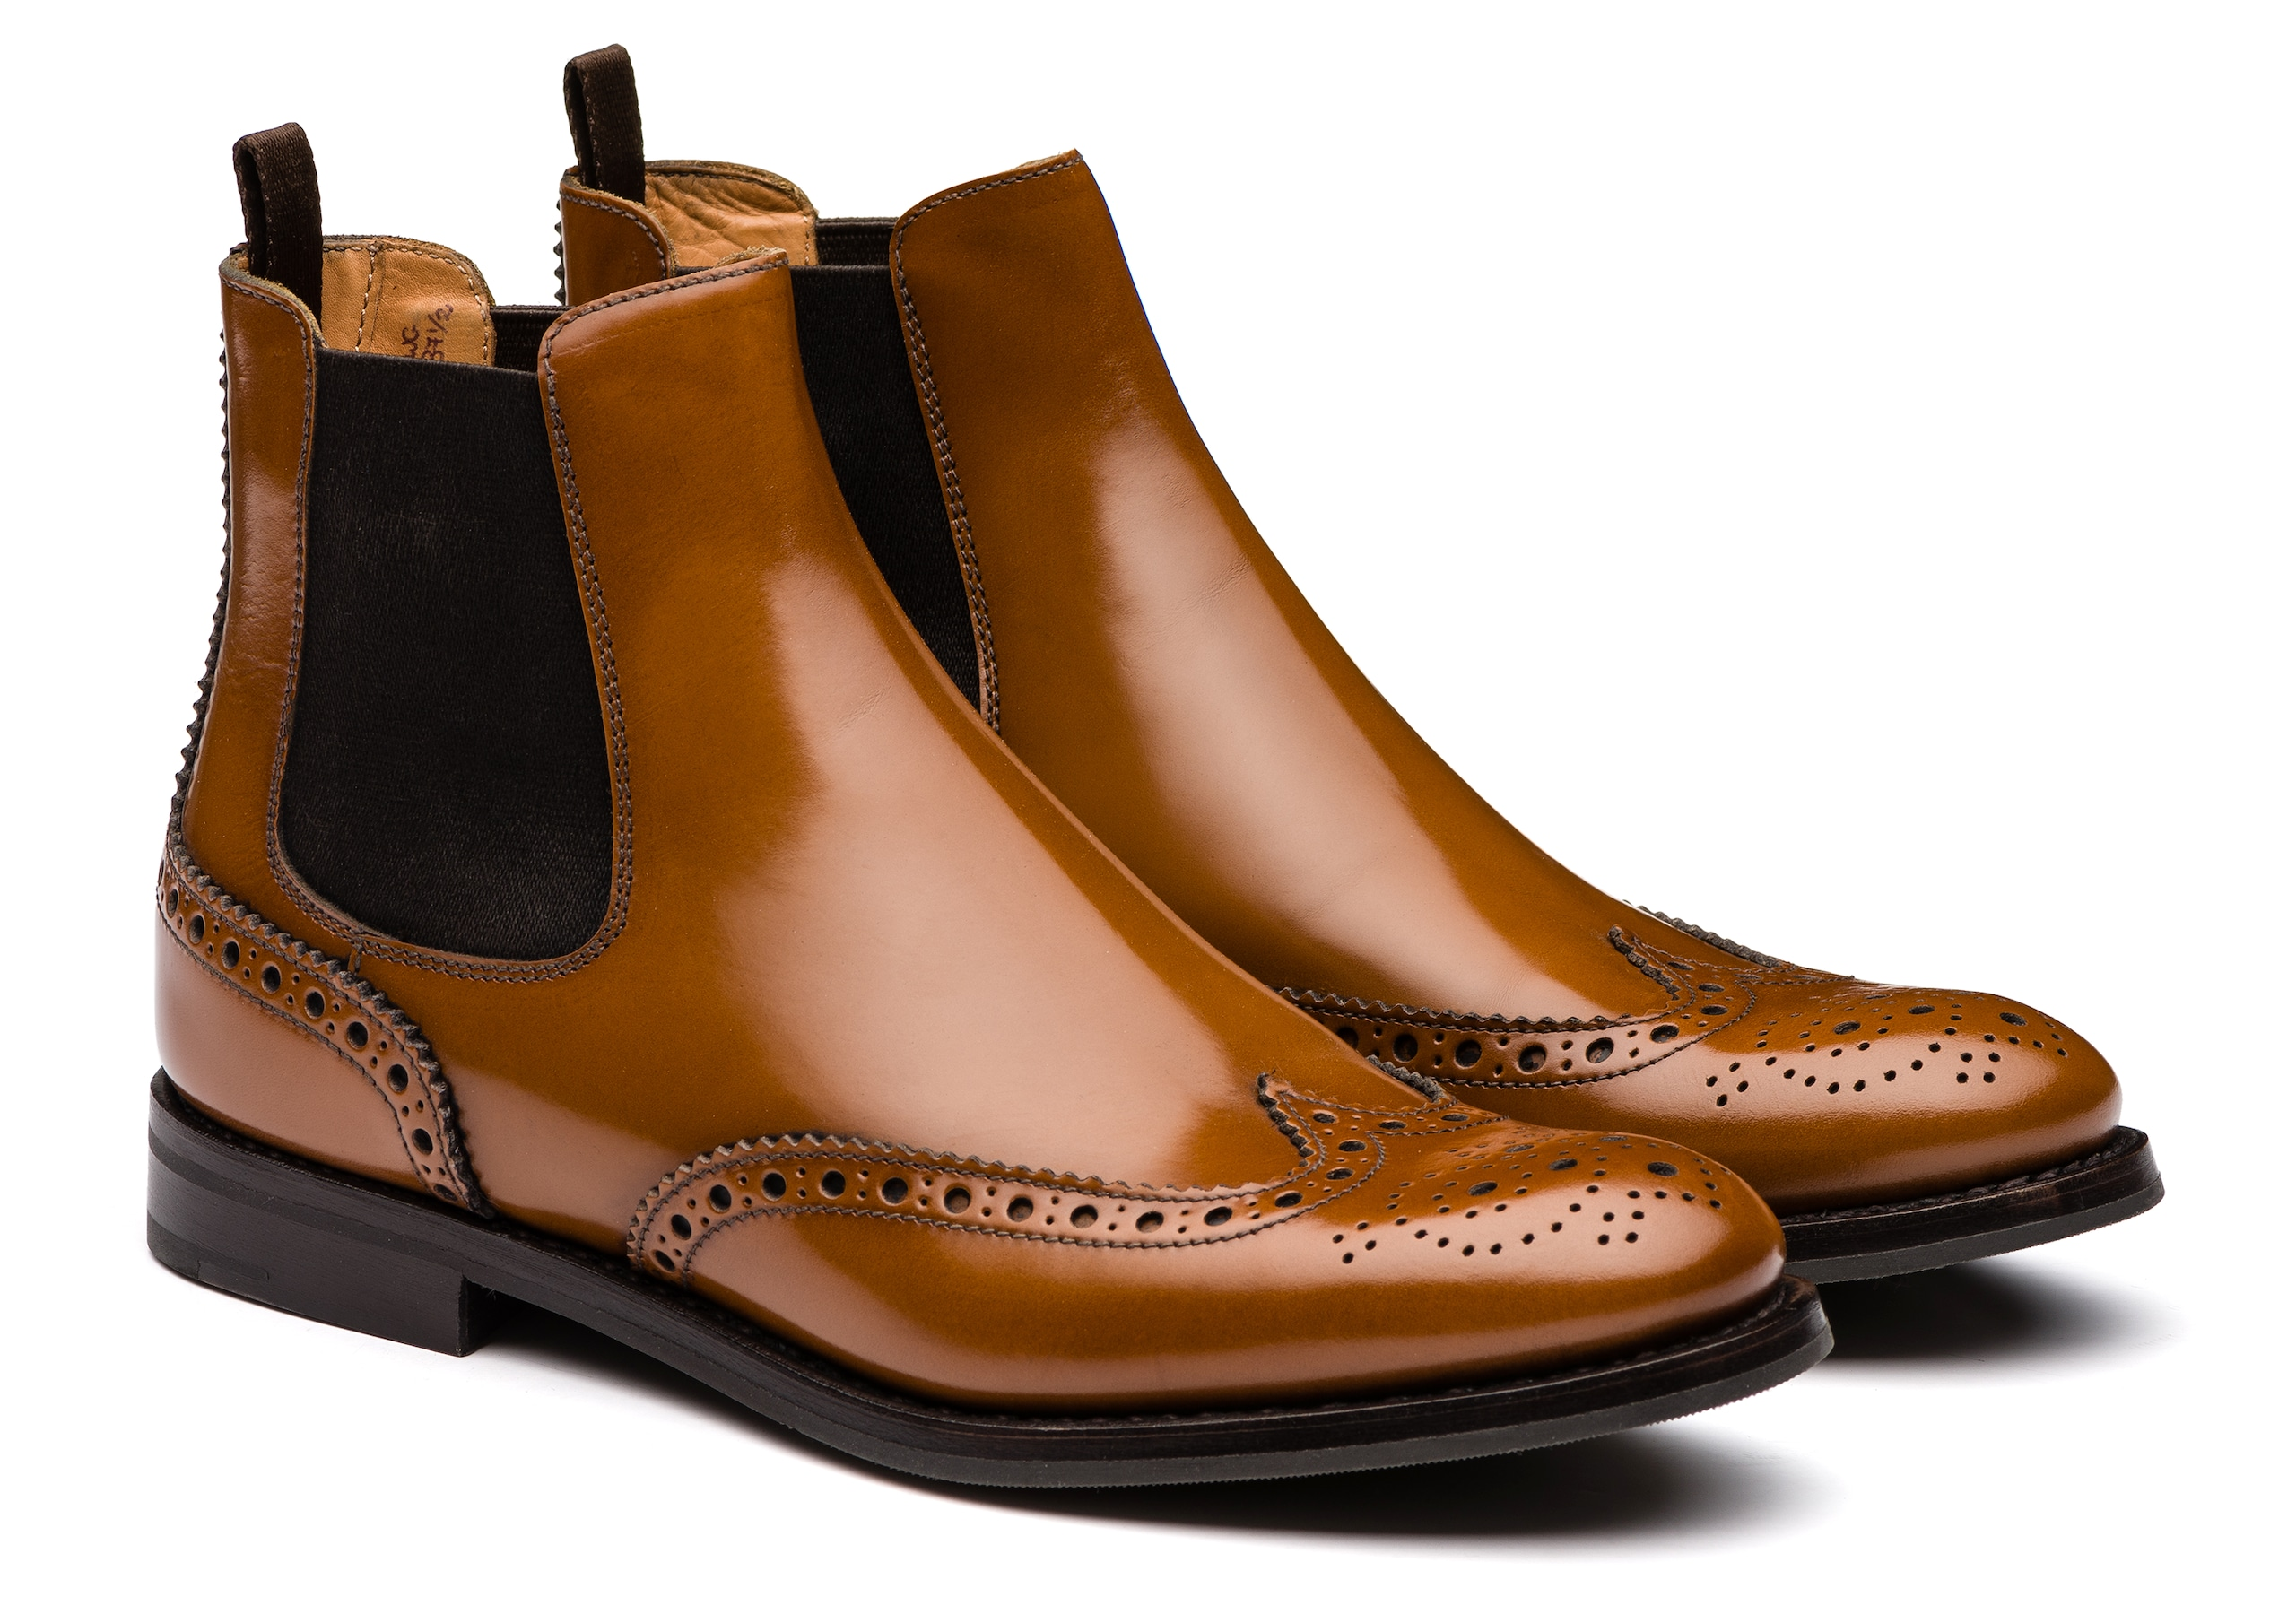 Ketsby wg Church's Stivale Chelsea Brogue in Pelle di Vitello Spazzolato Marrone